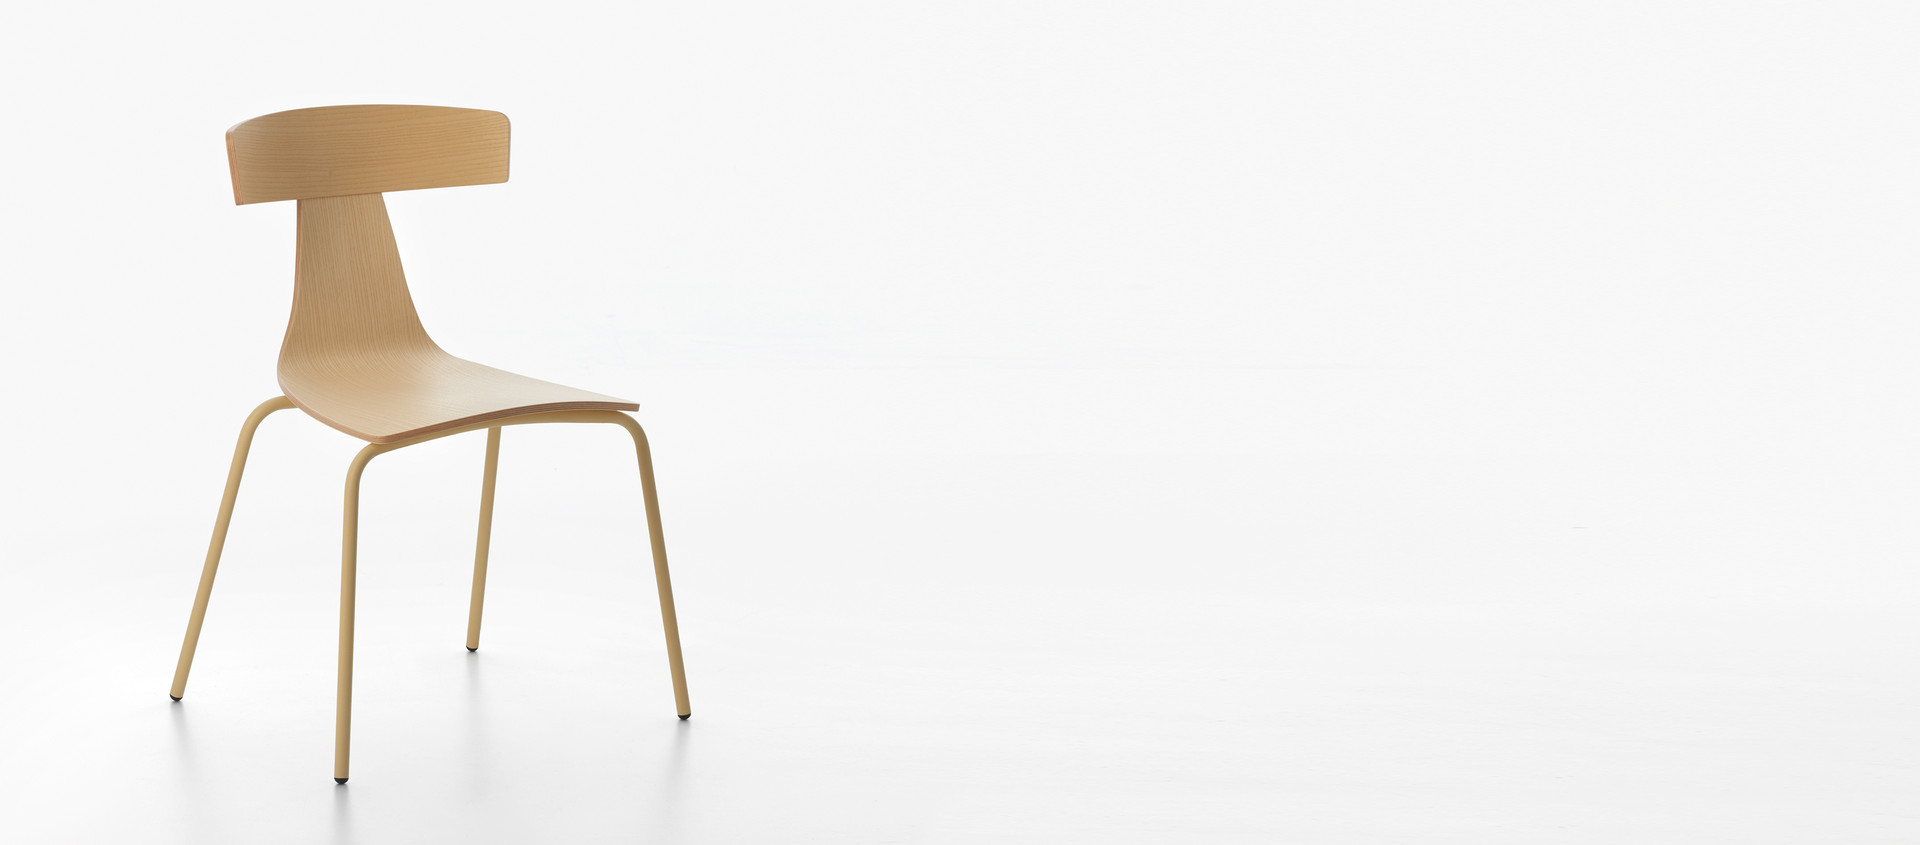 HERO - PLANK REMO wood chair, metal structure